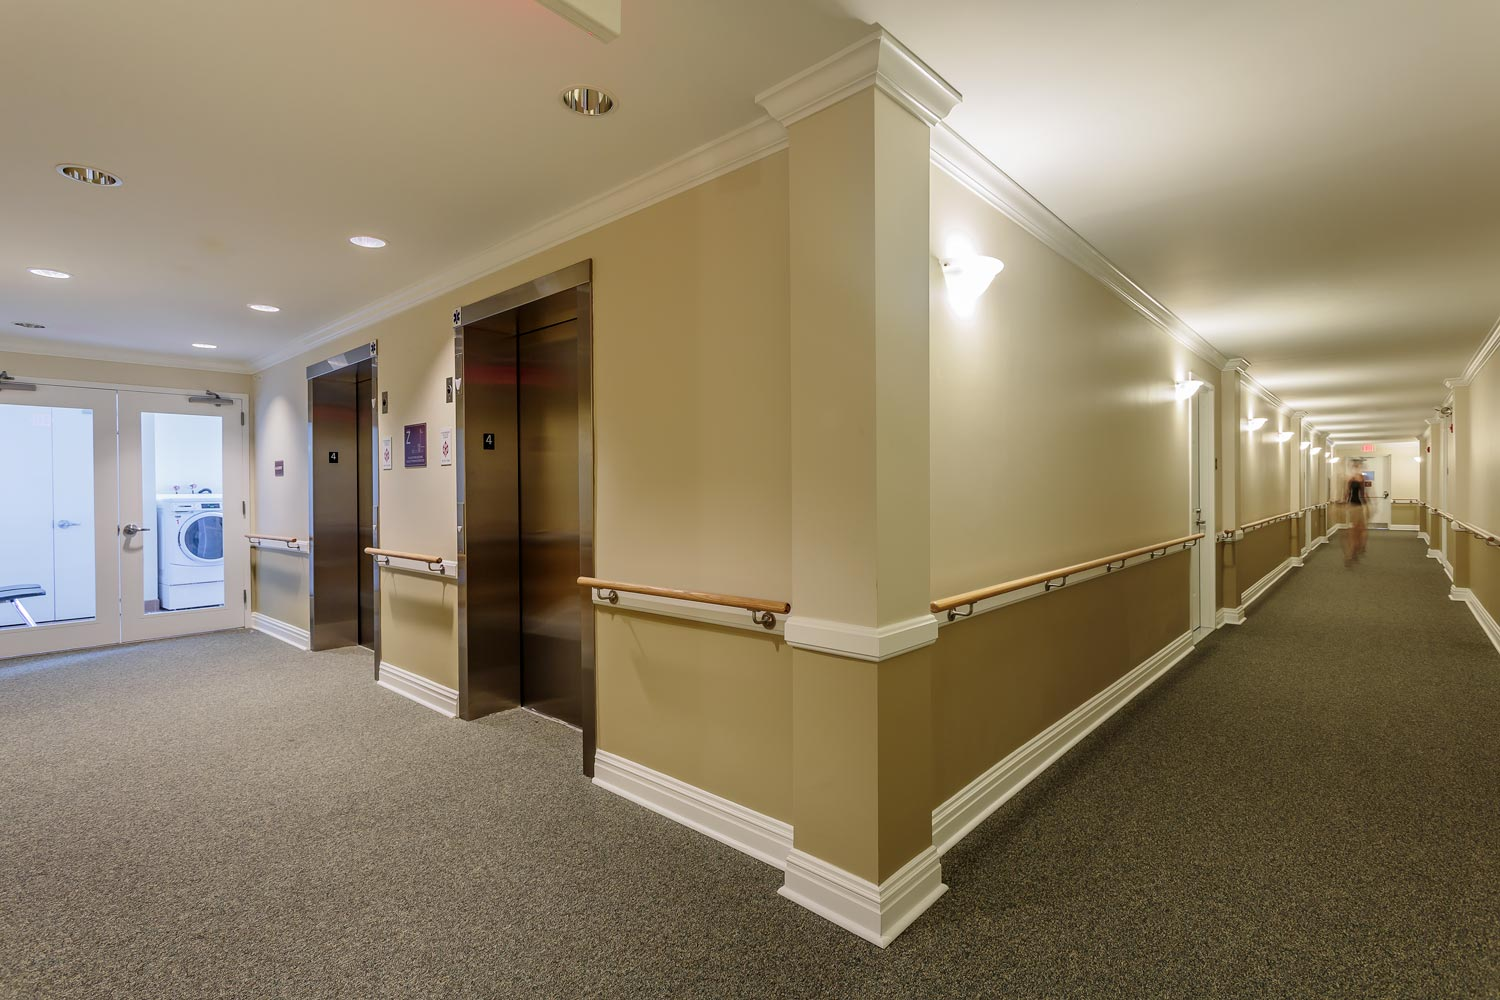 Hallway and laundry area at The Friedrichs.